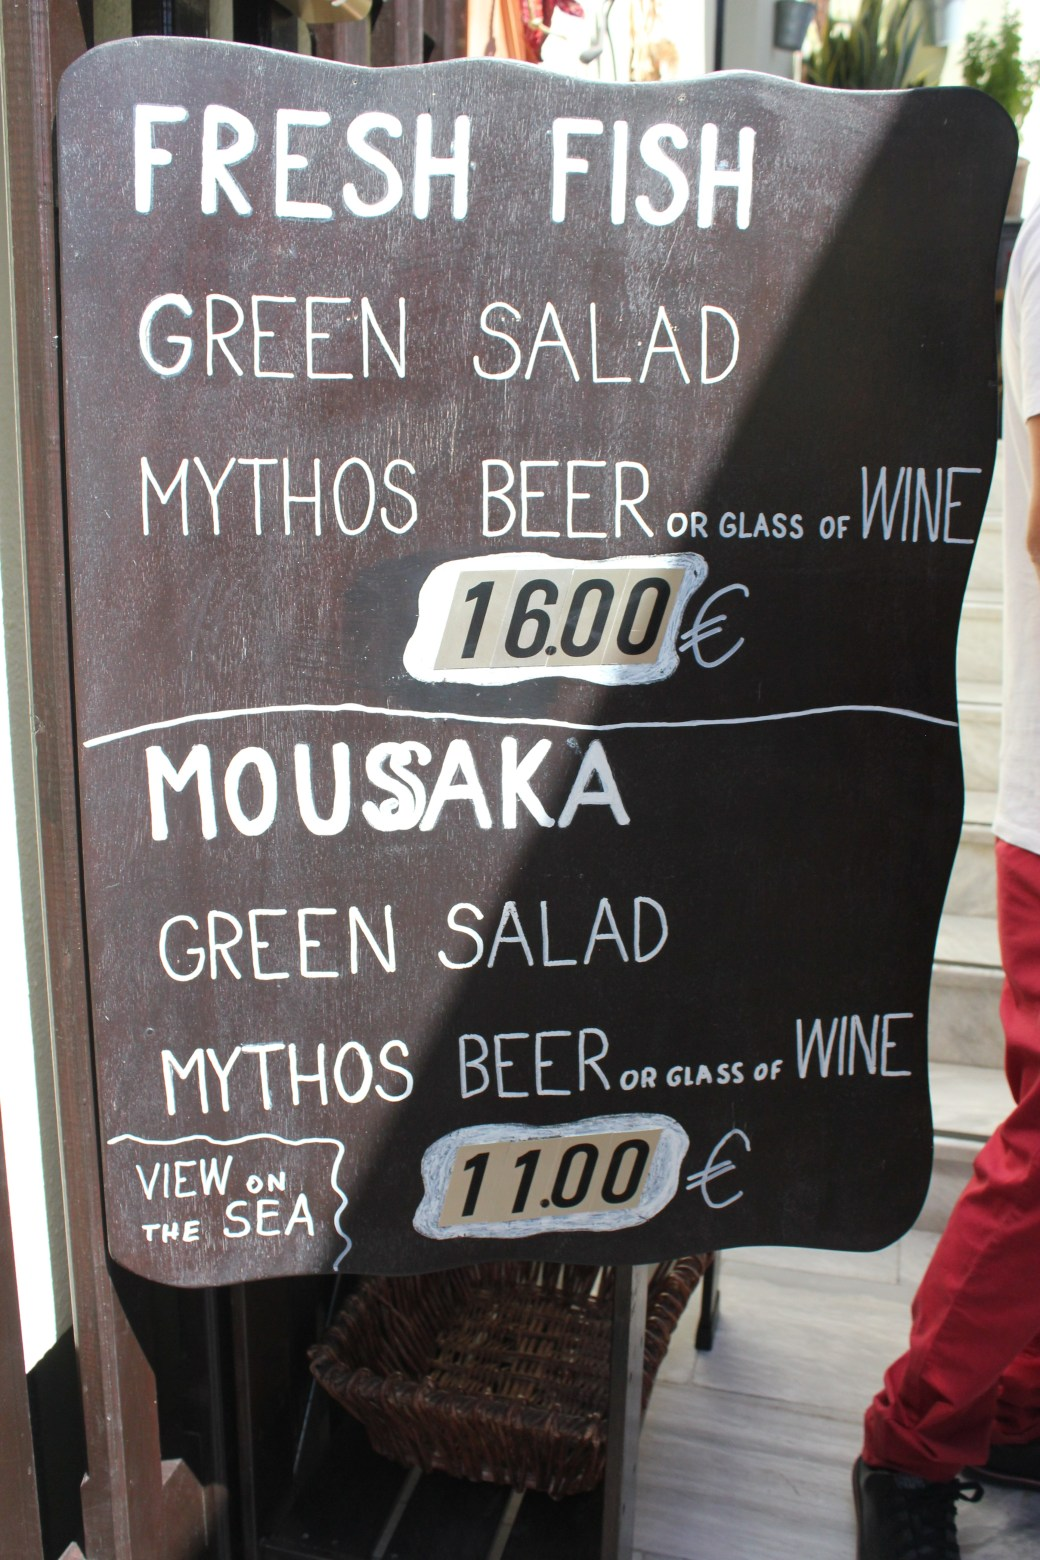 Mythos Beer; Santorini Island, Greece; 2013